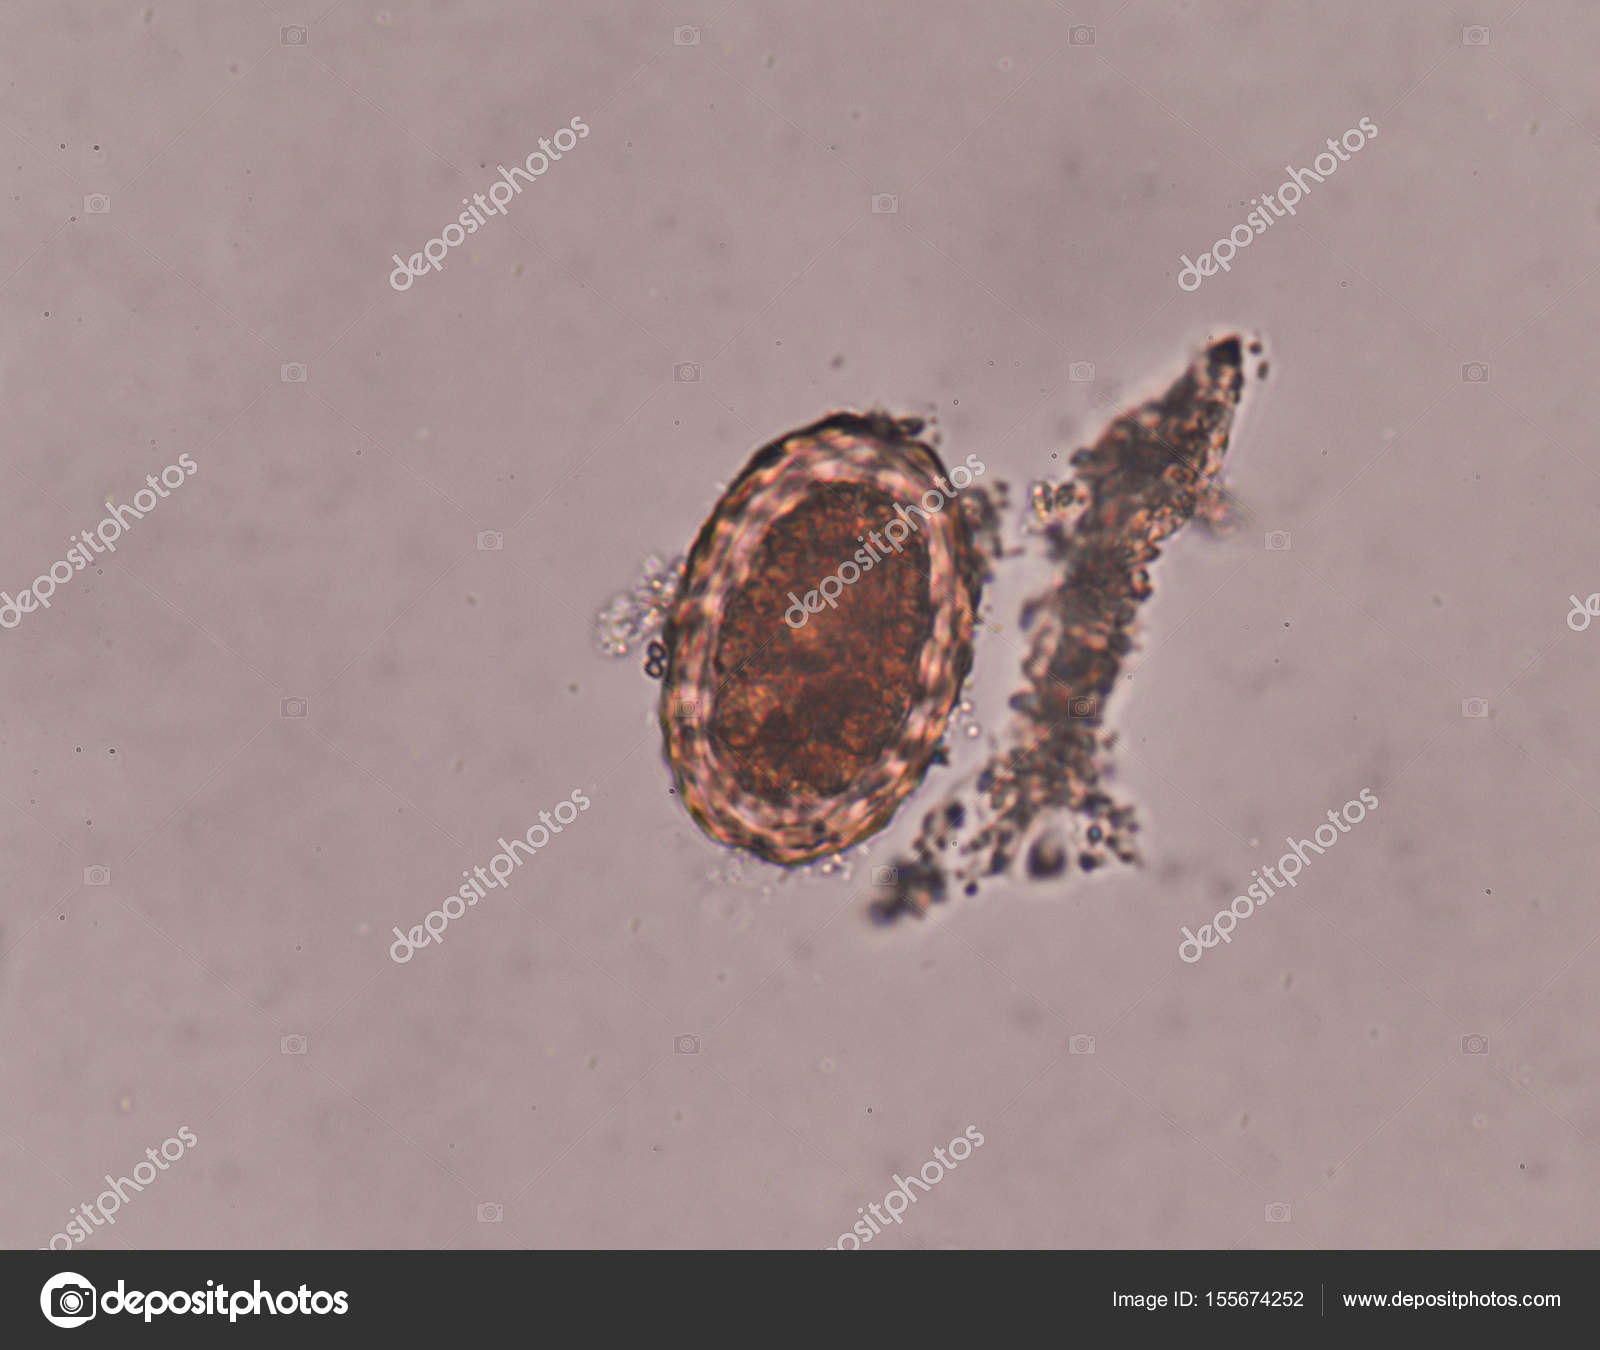 Ascariasis In Stool